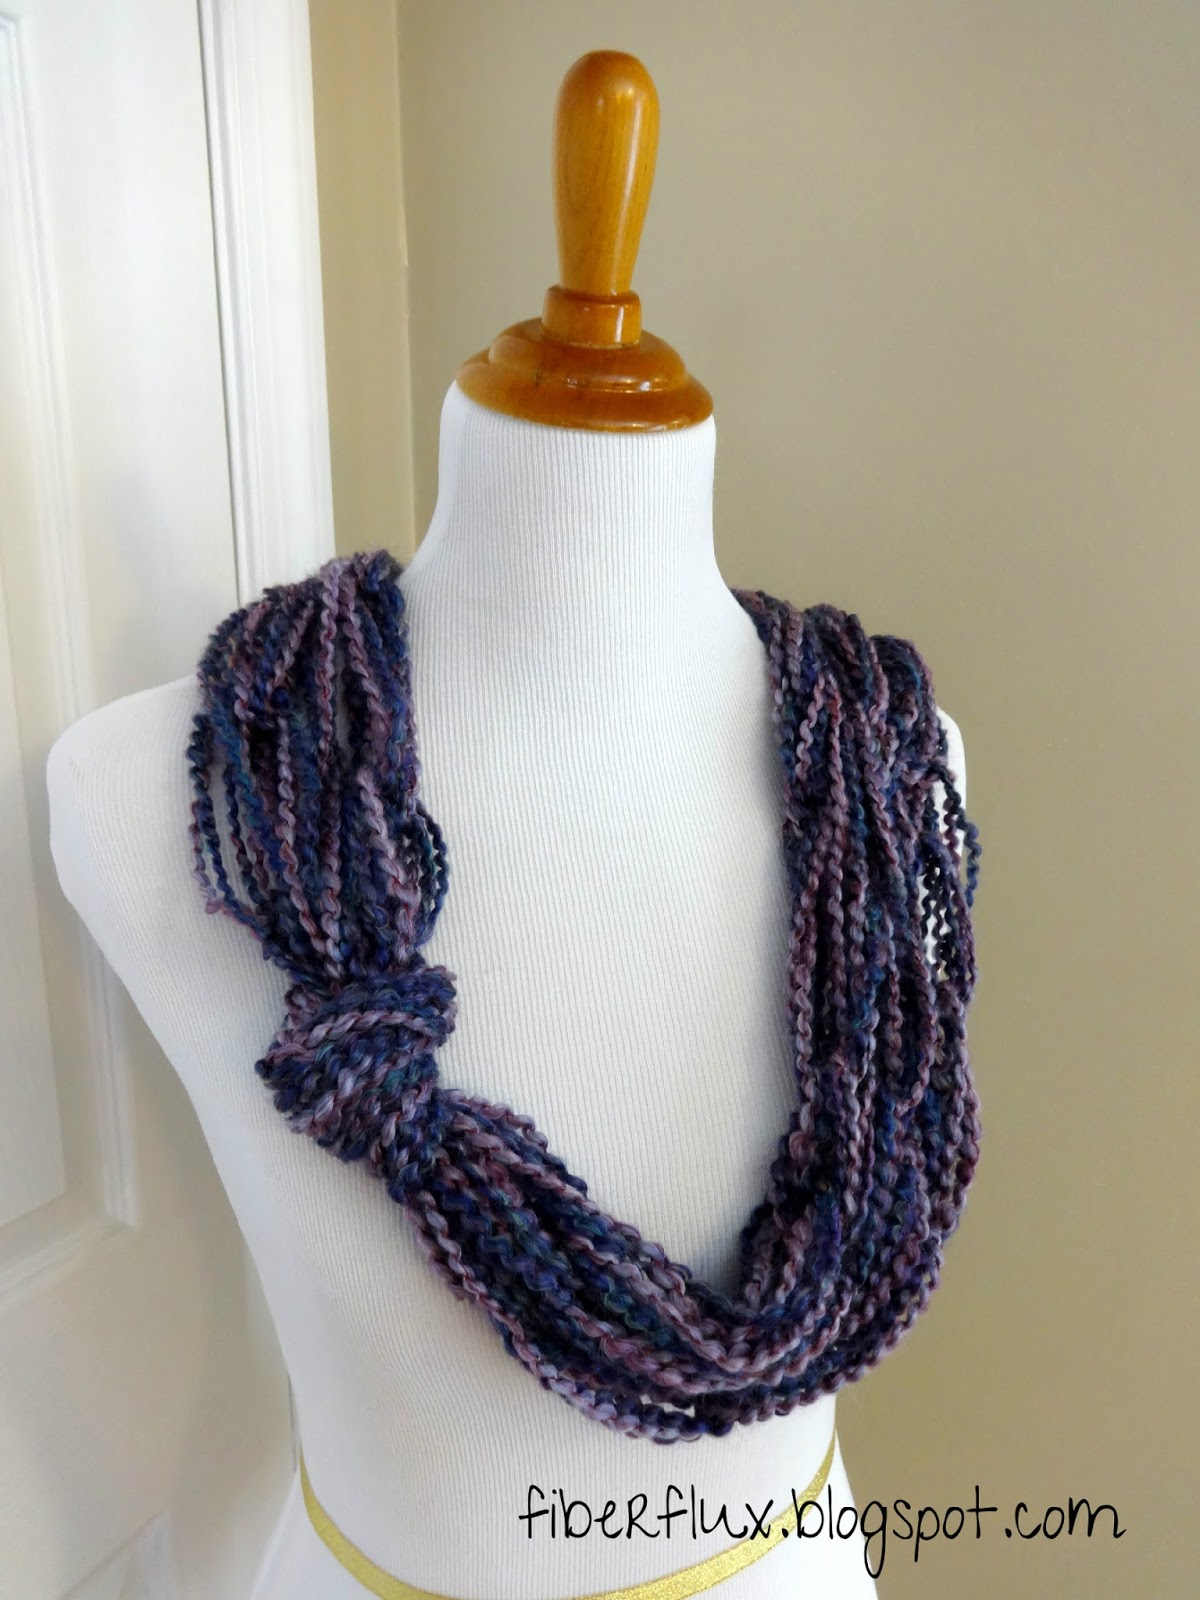 Arm Knitting Patterns : Fiber Flux: Free Knitting Pattern...Arm Knit Knotted Cowl!